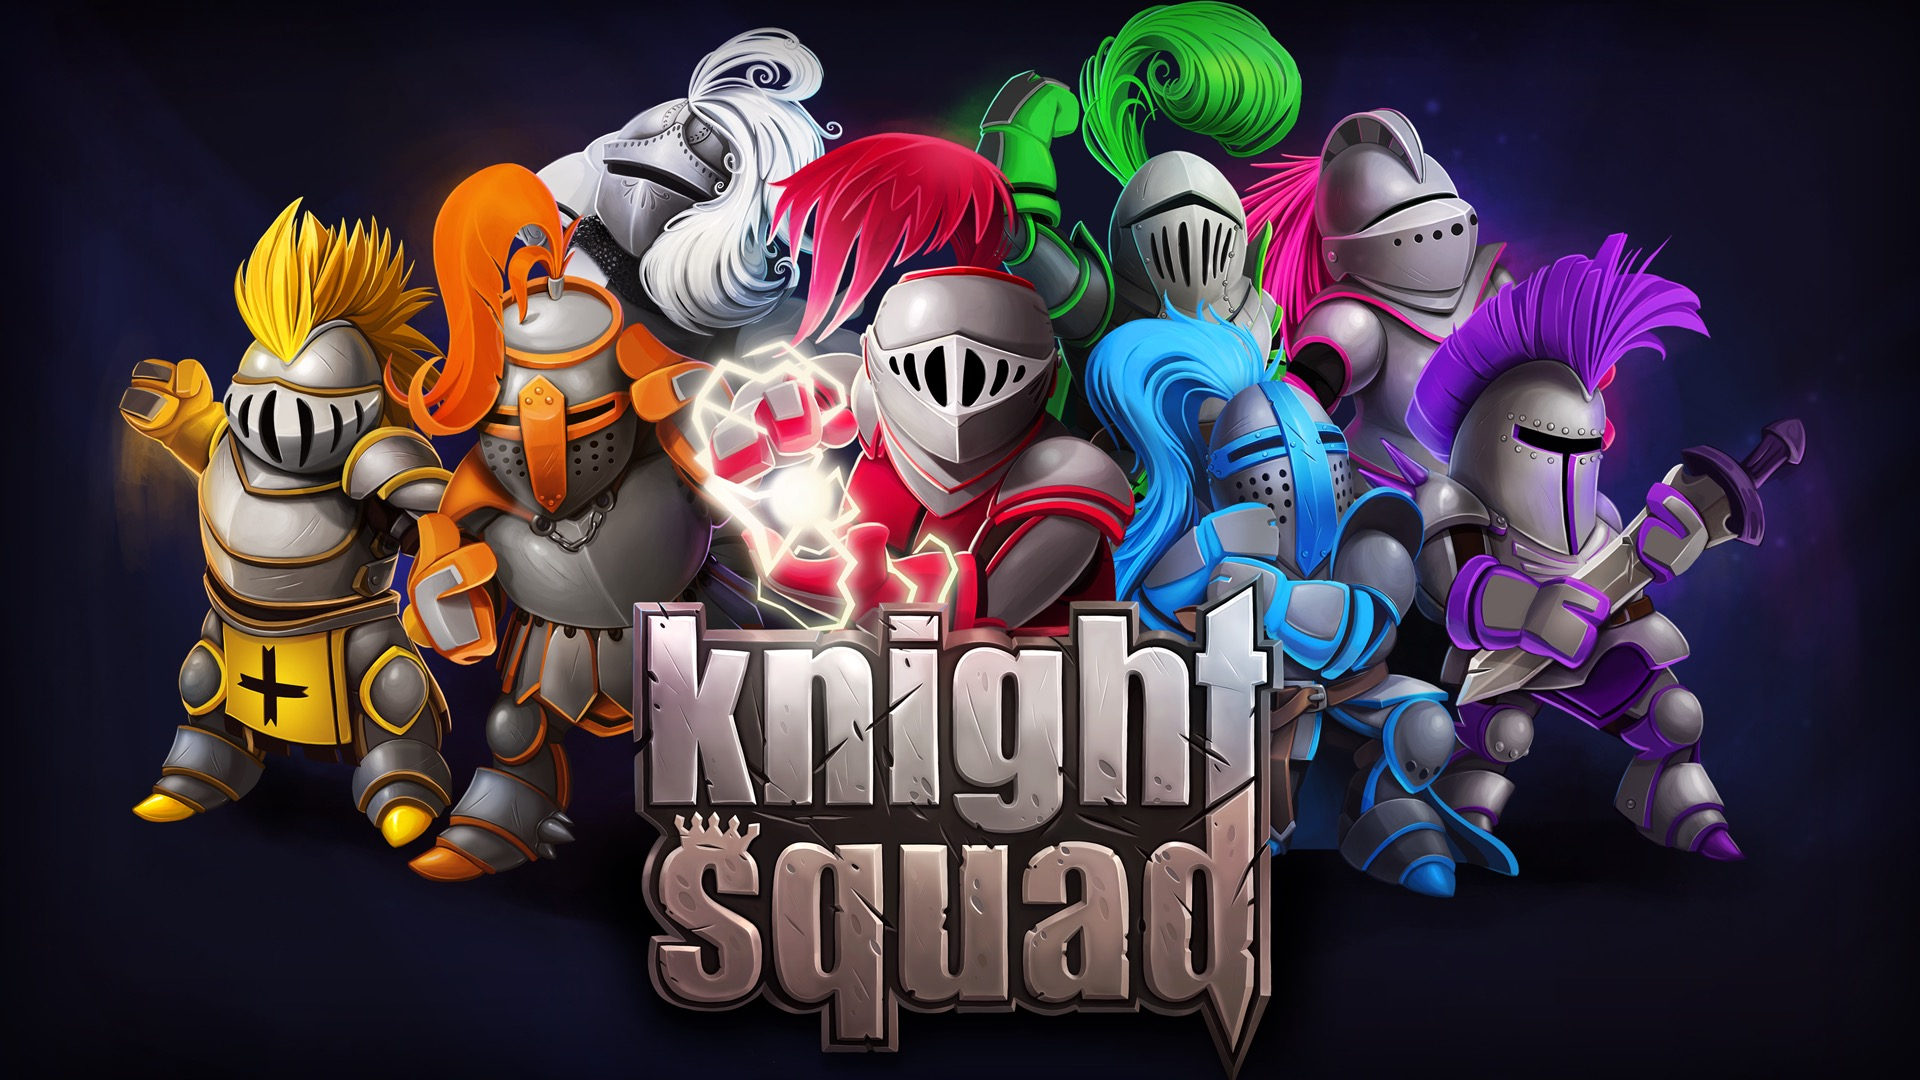 HQ Knight Squad Wallpapers | File 450.64Kb